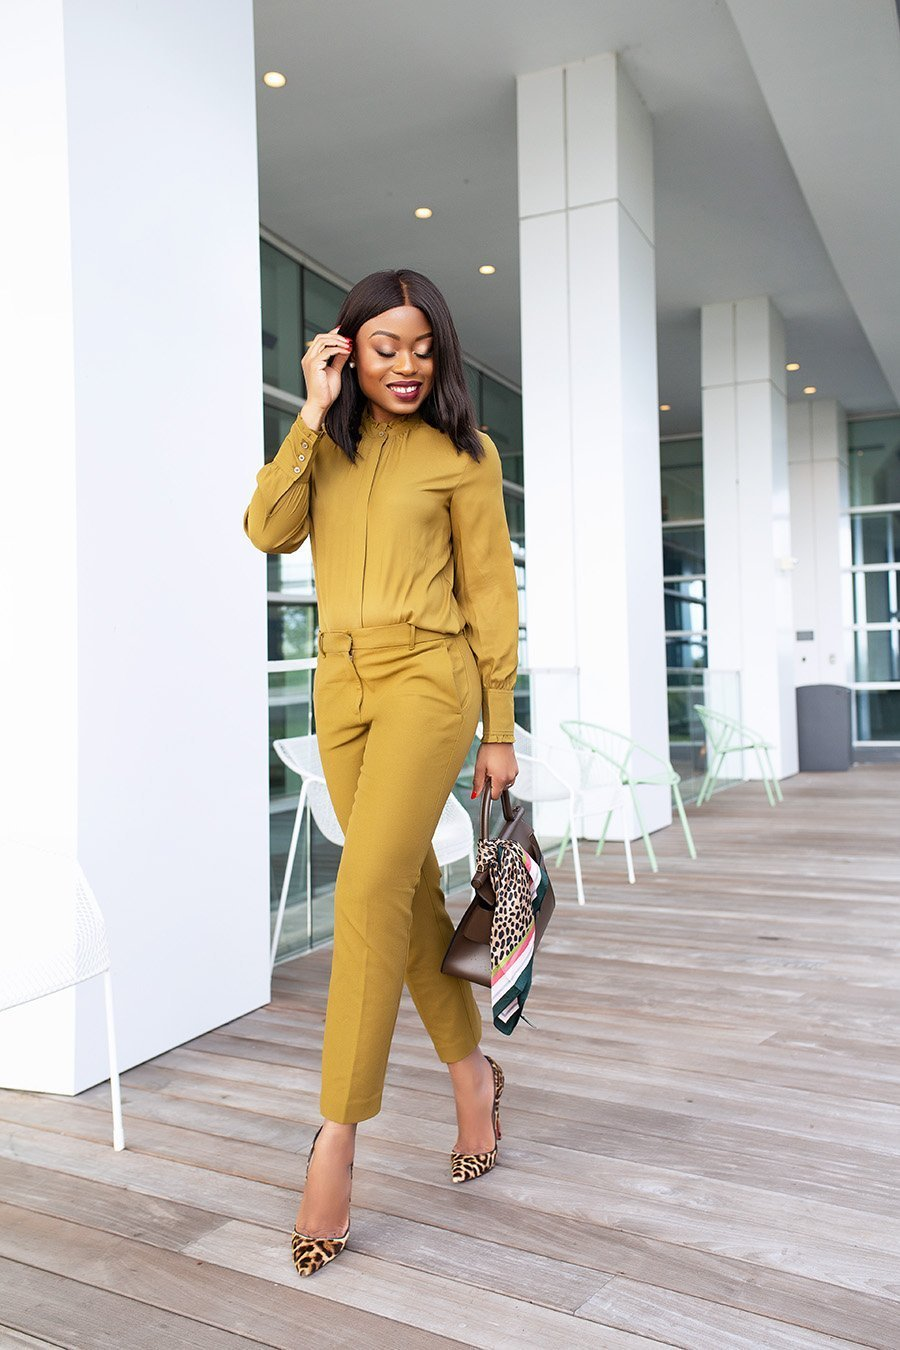 Stella Adewunmi of JadoreFACEBOOK-Fashion in Monochromatic office style